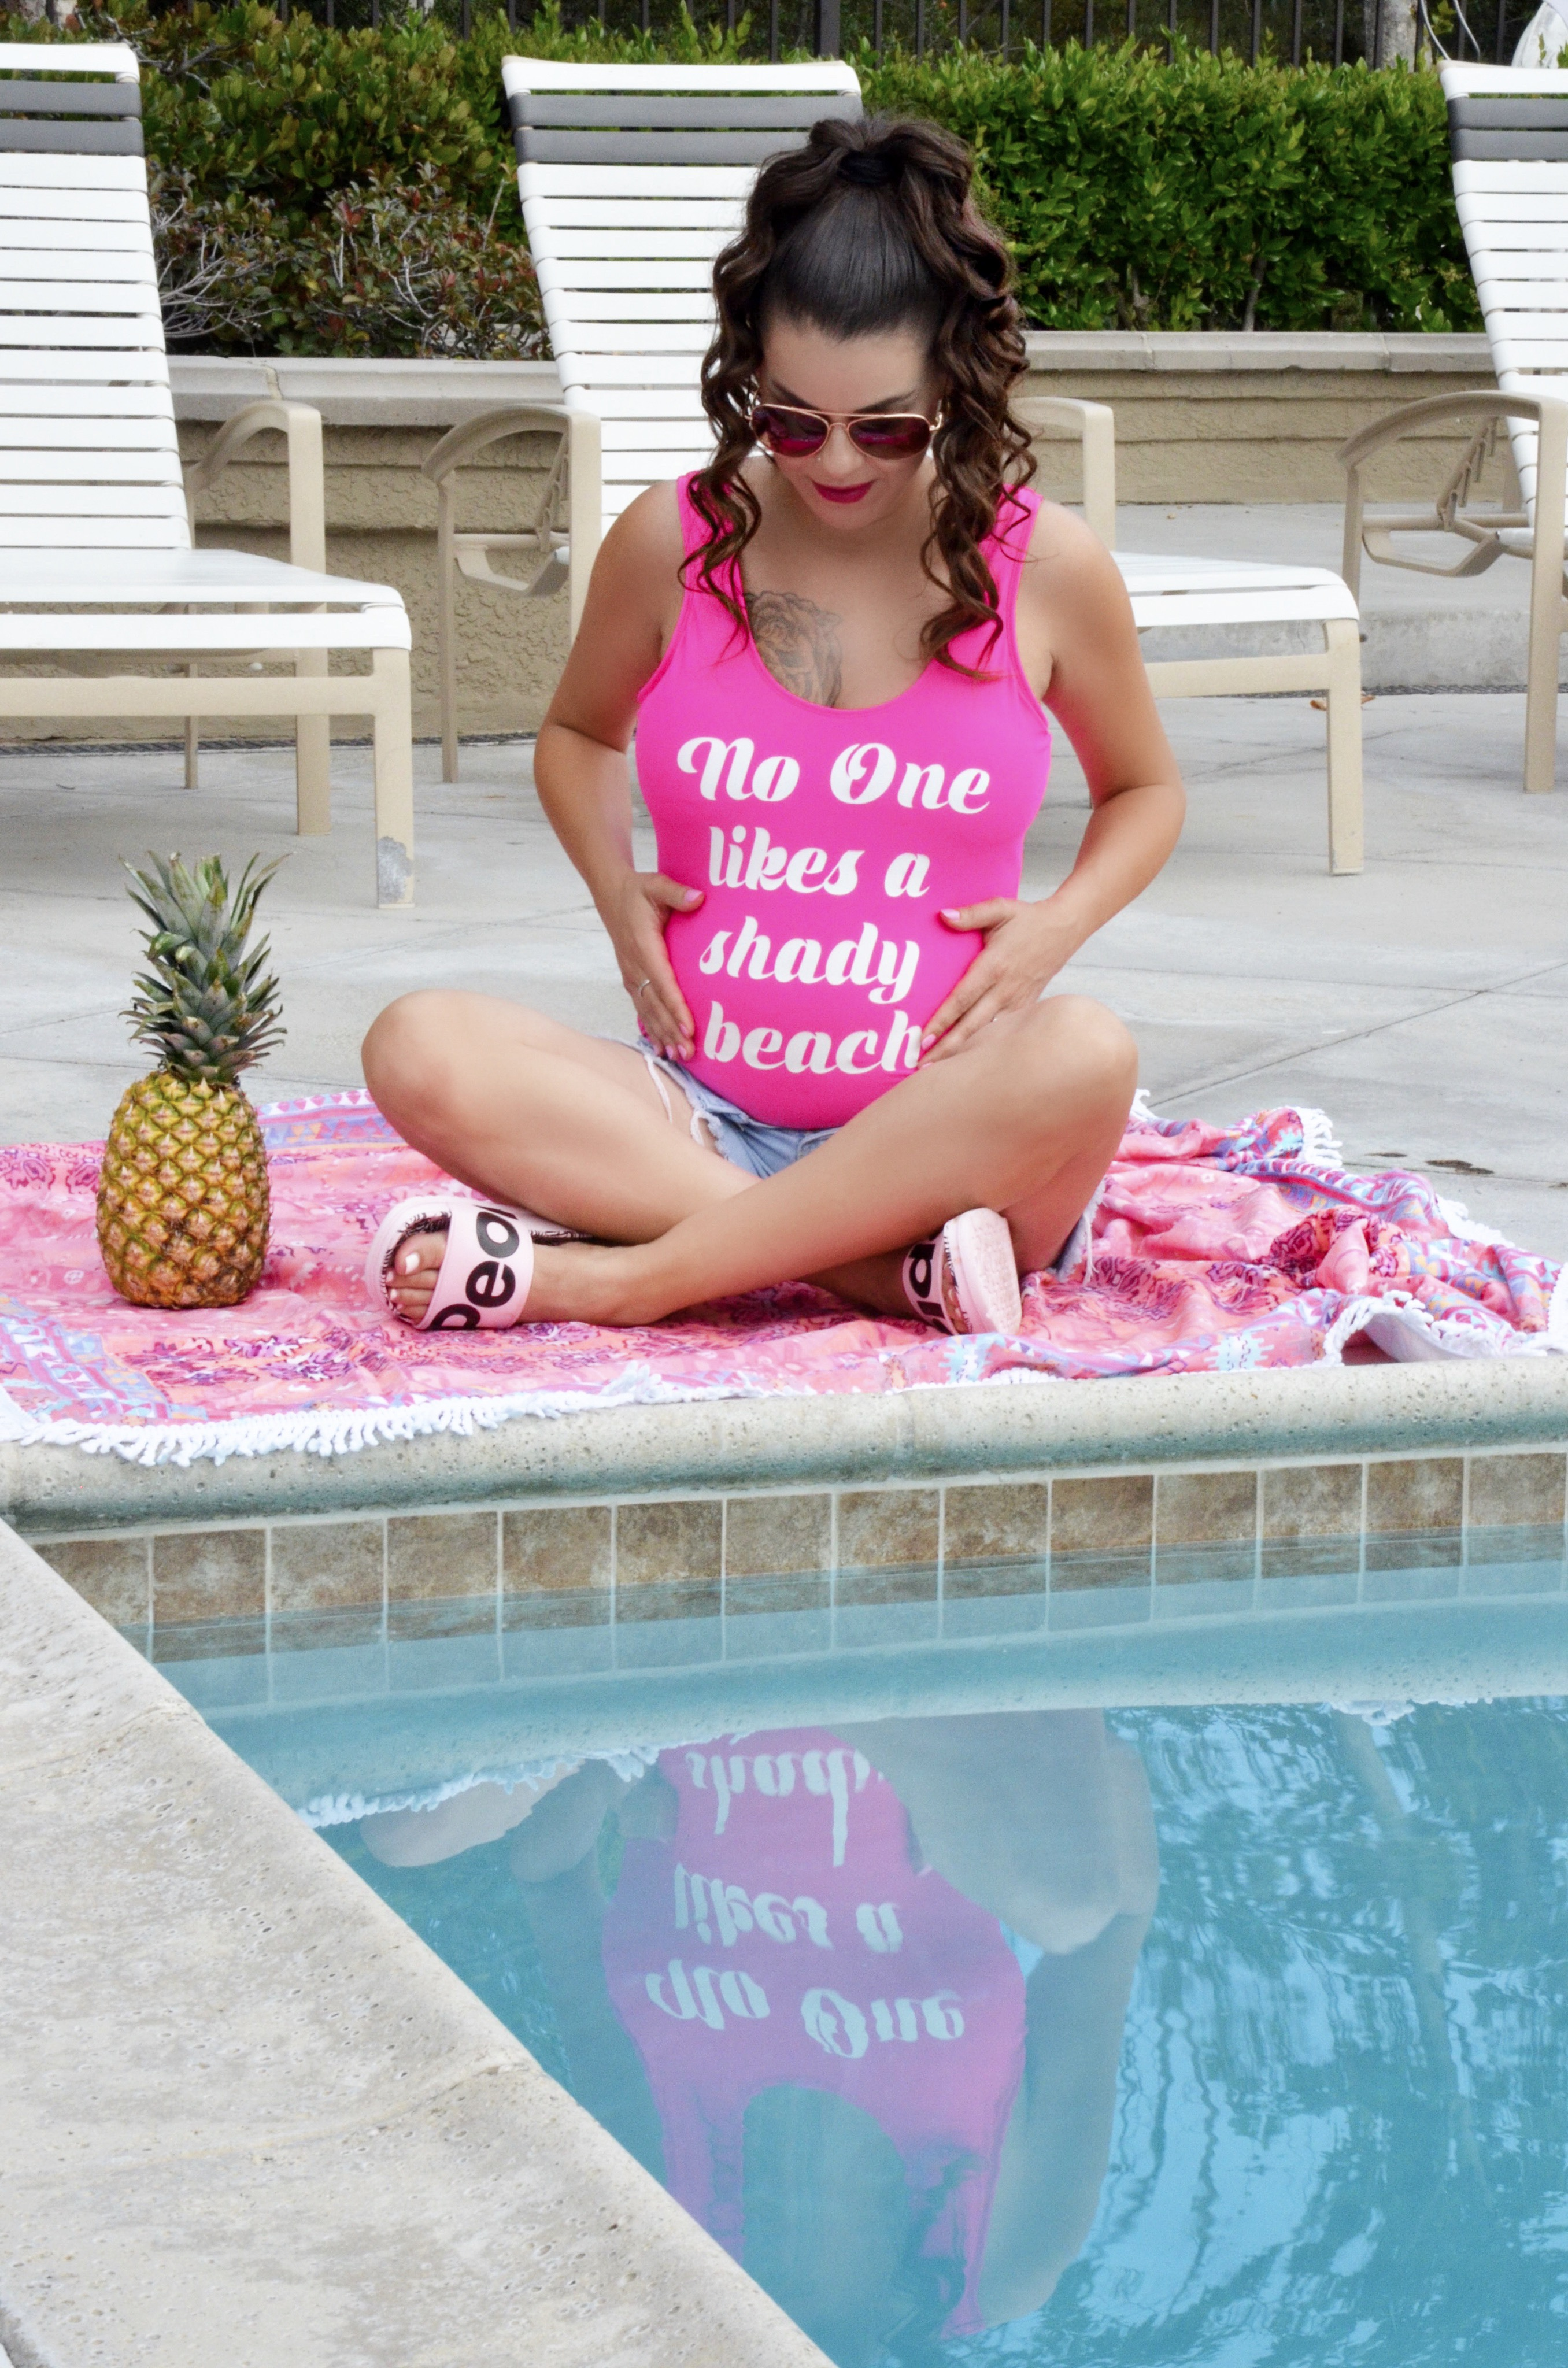 86bbd696f2e86 ... Best Maternity Swimsuits maternity bathing suits that flatter your  belly bathing suit trends for pregnancy summer 2018 ...